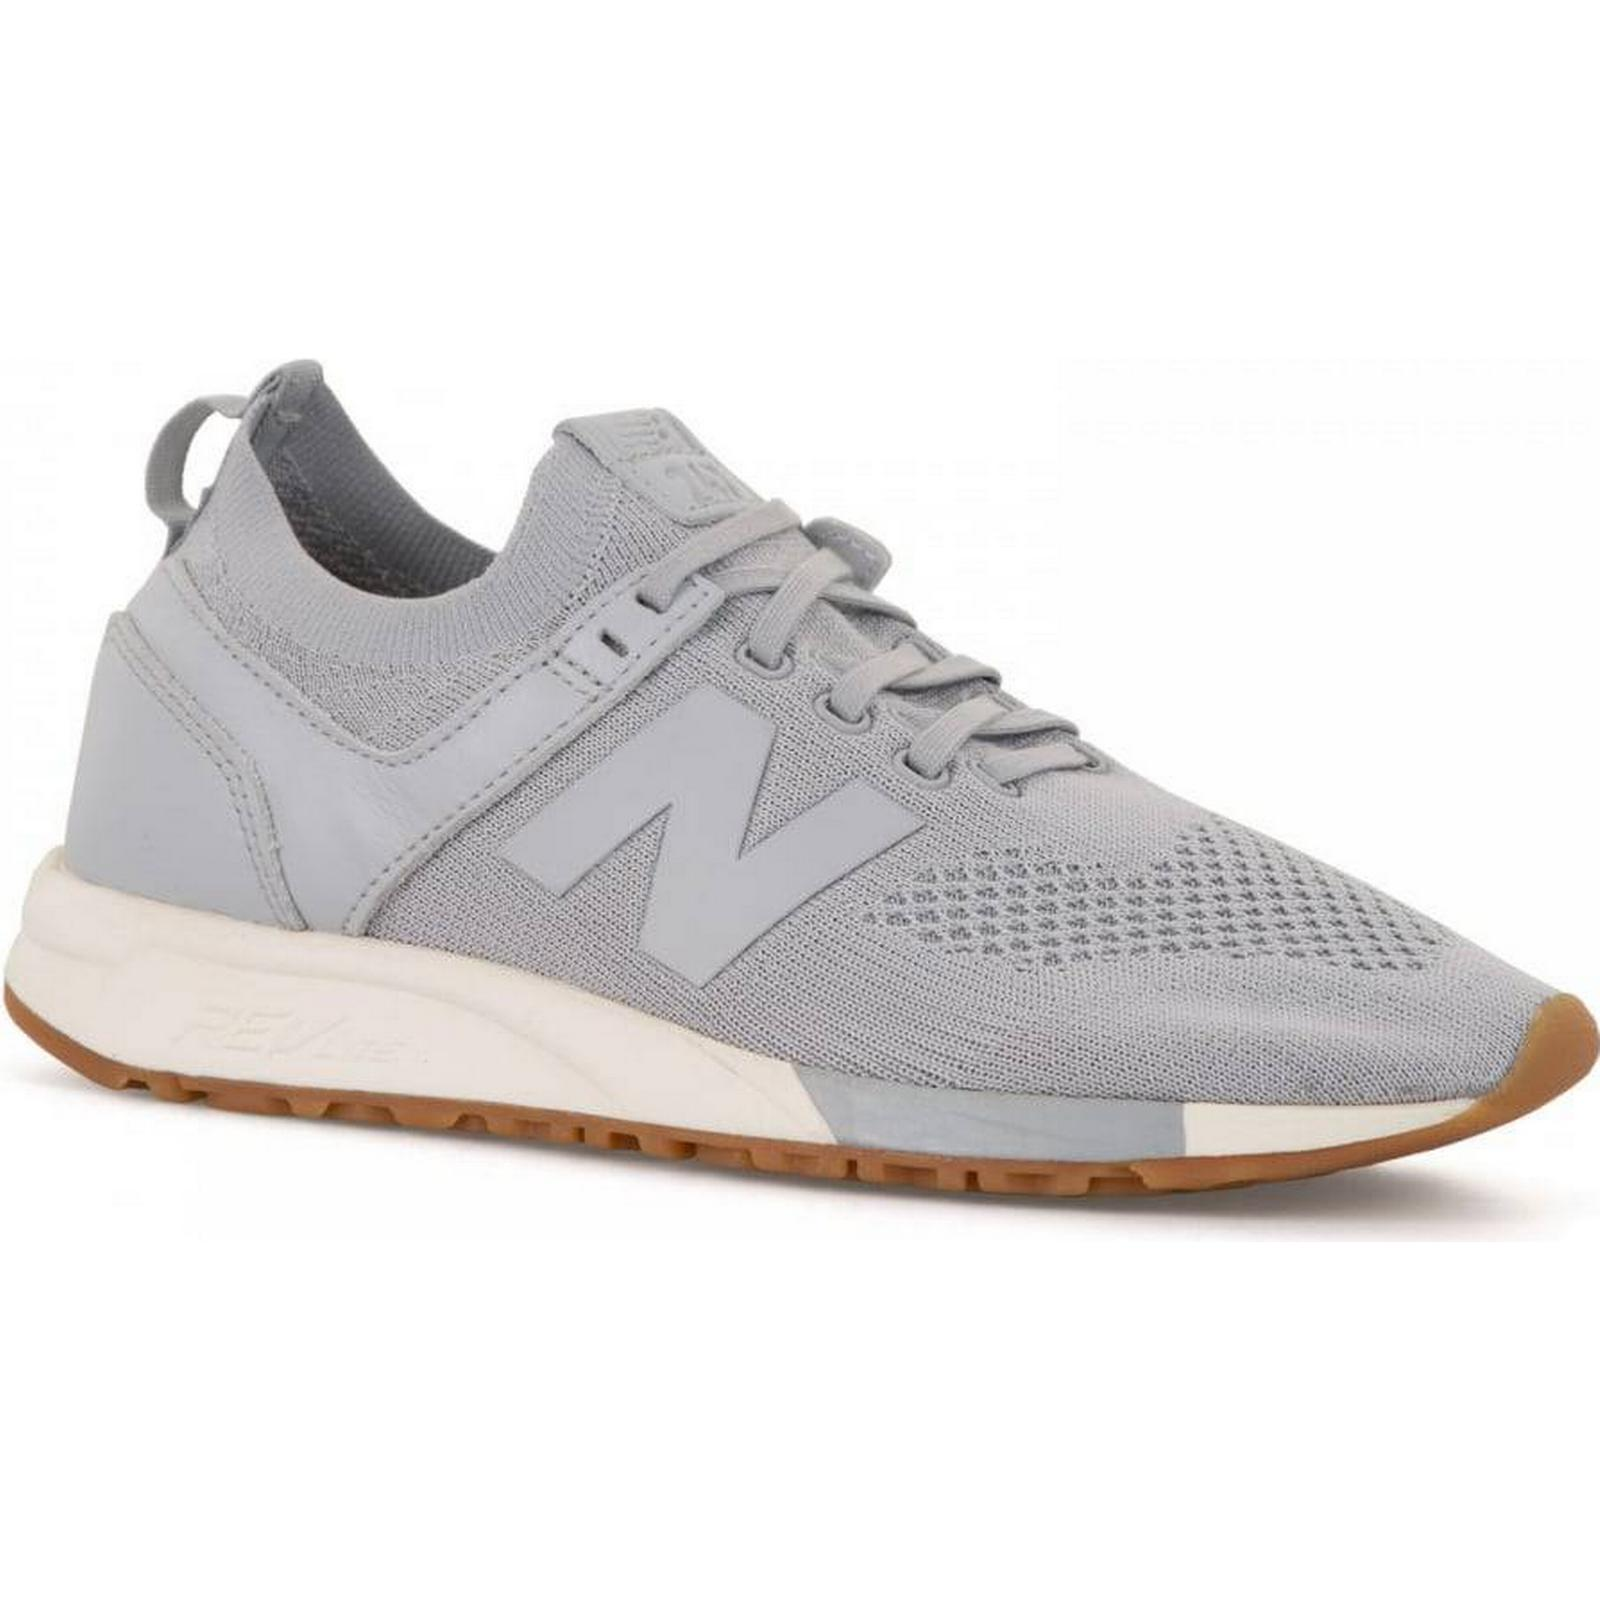 New Balance Mens 11, Mesh Trainers (Grey) Size: 11, Mens Colour: GREY ce5cad